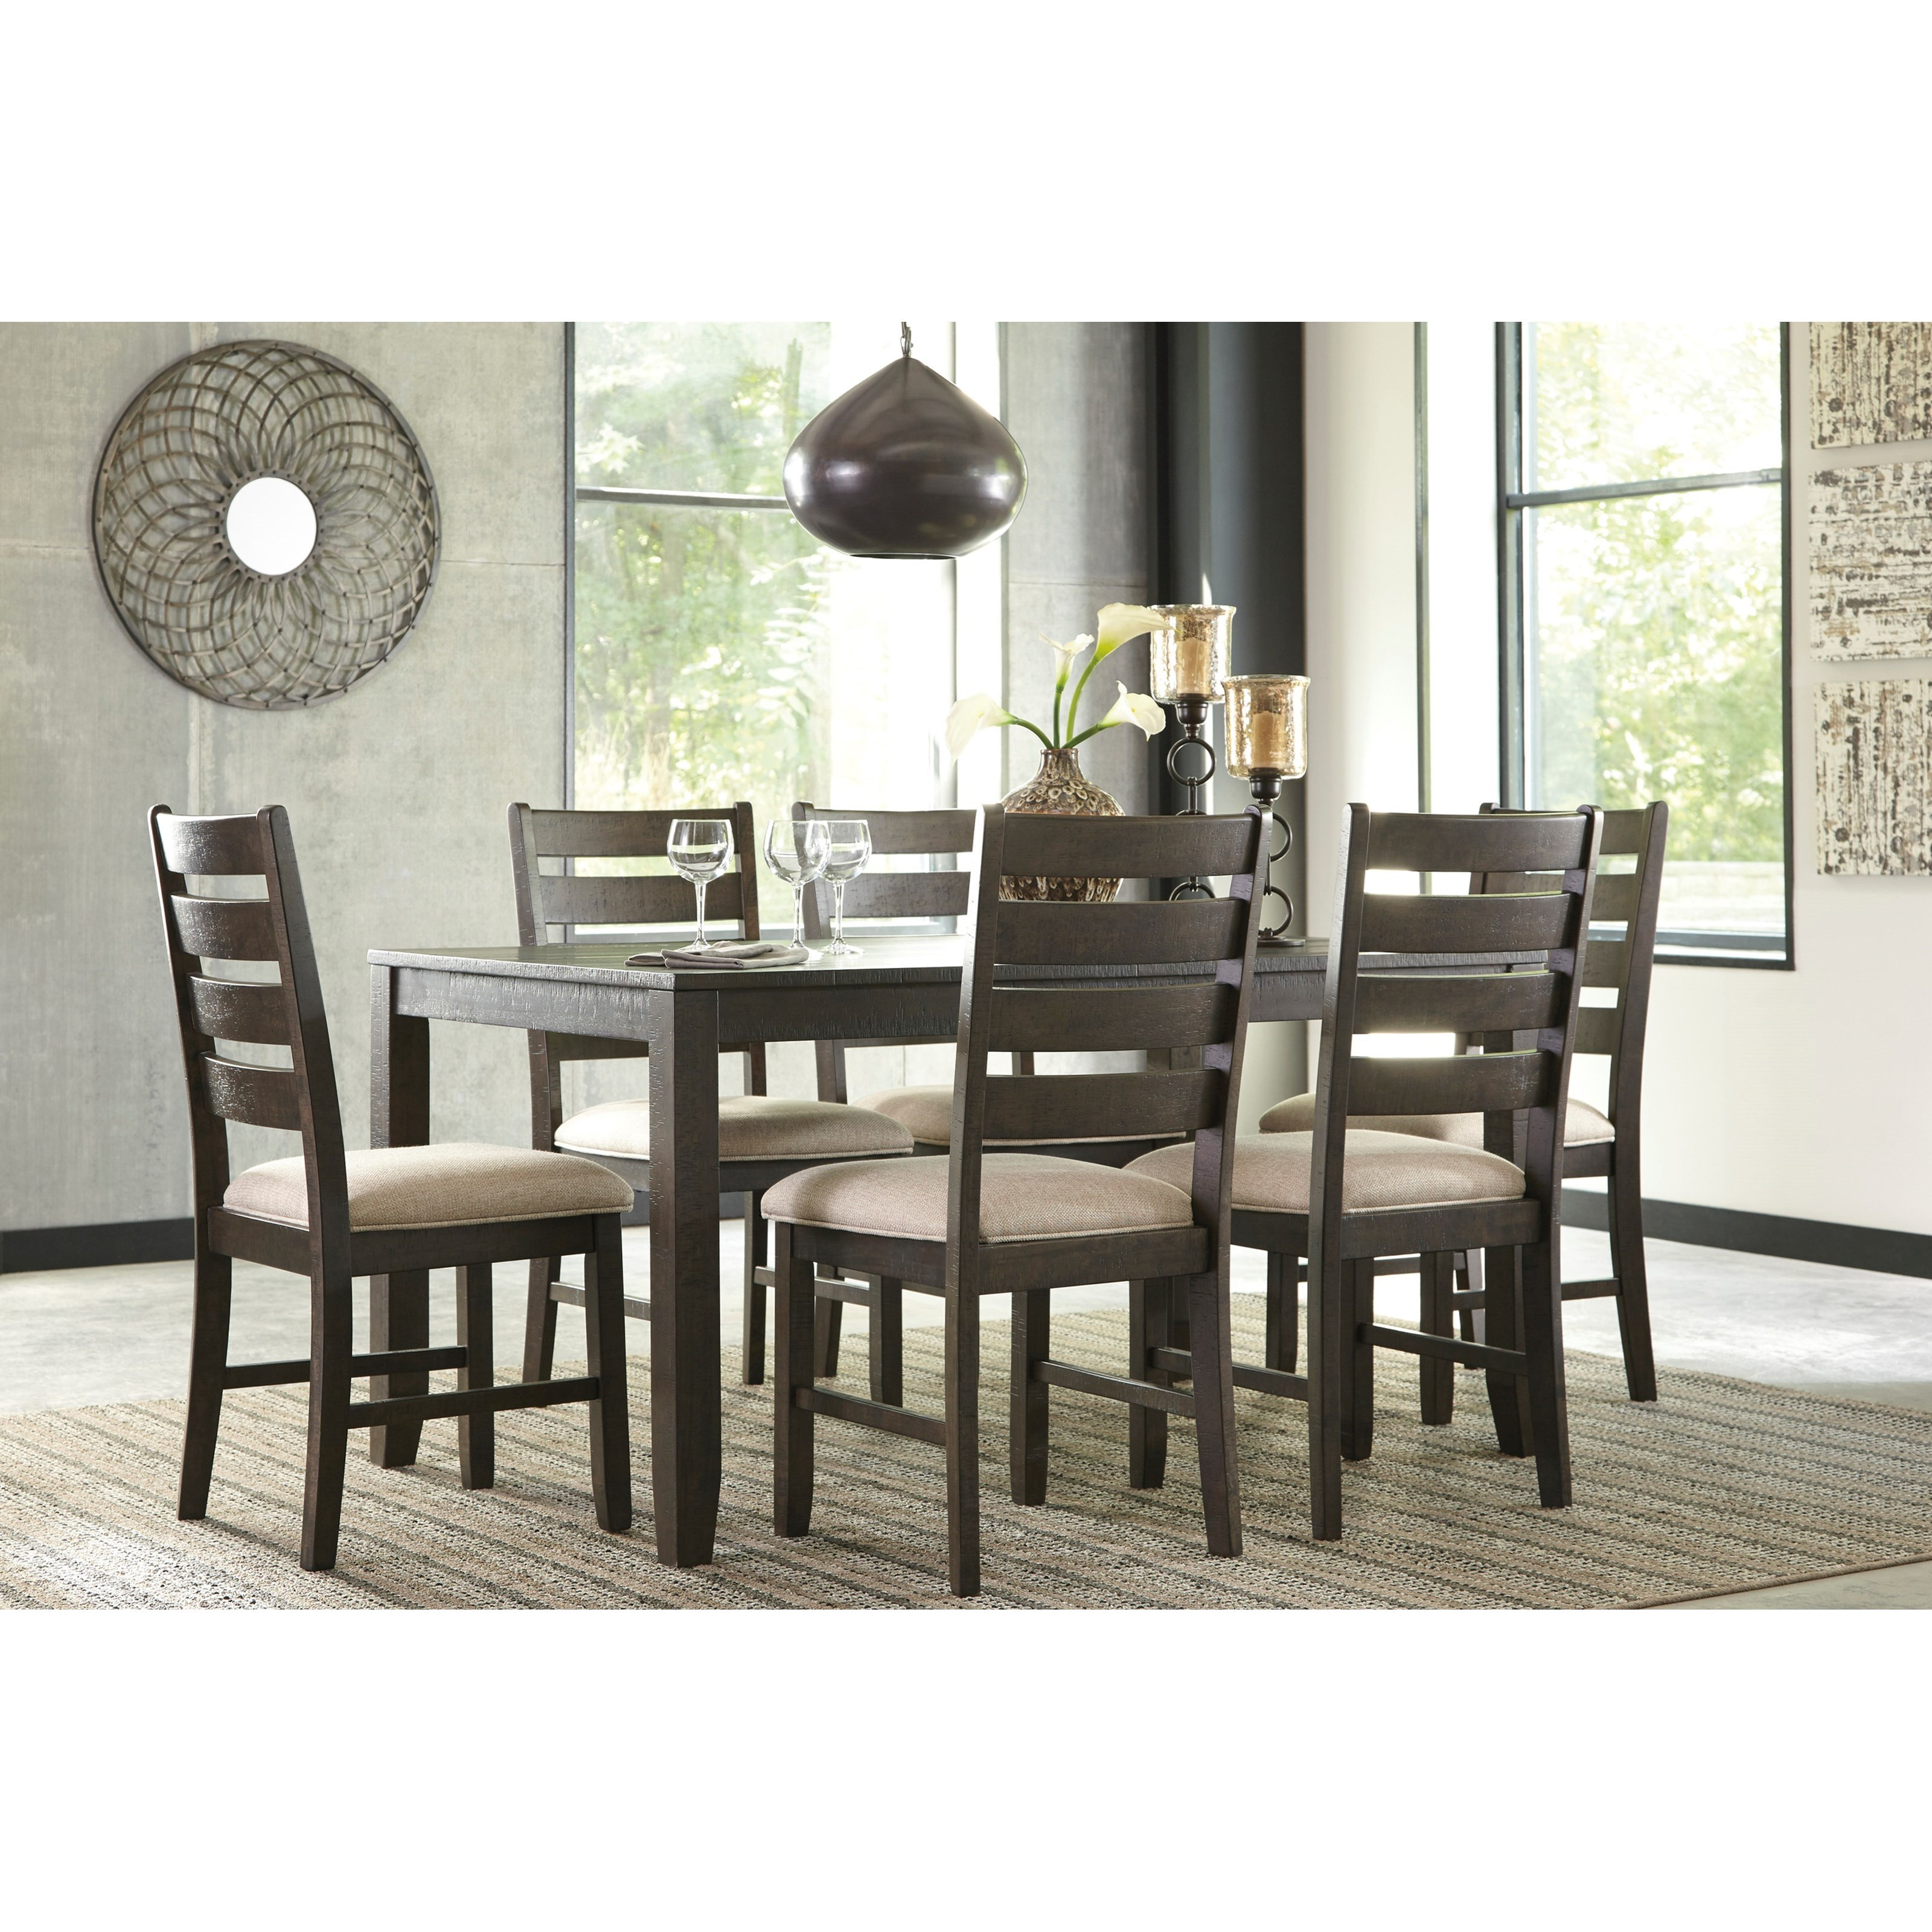 Dining Room Furniture Pieces: Contemporary 7-Piece Dining Room Table Set By Signature